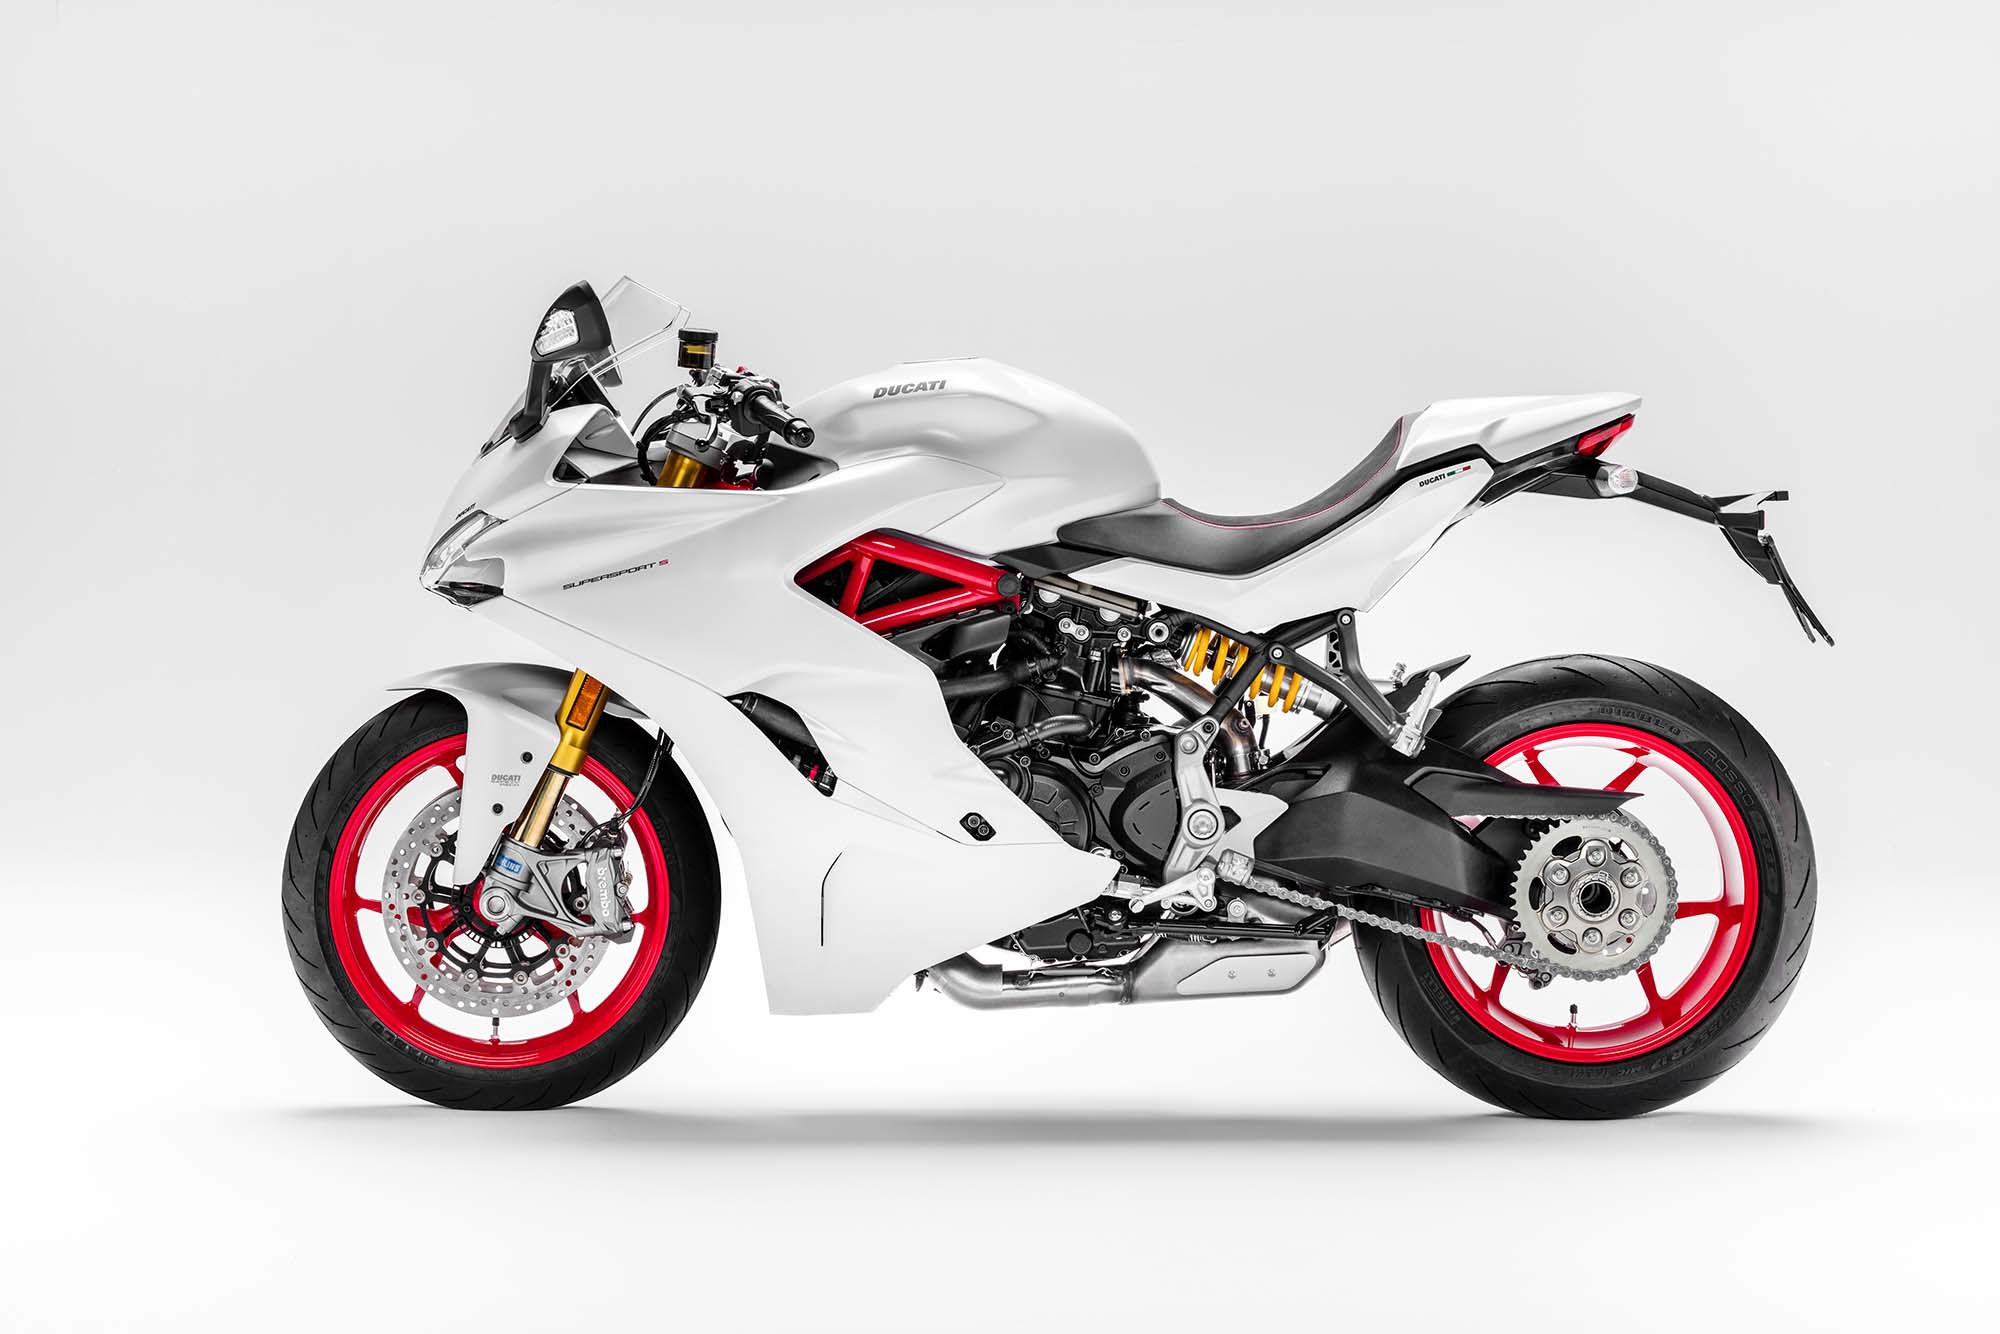 2017 Ducati Supersport S 04